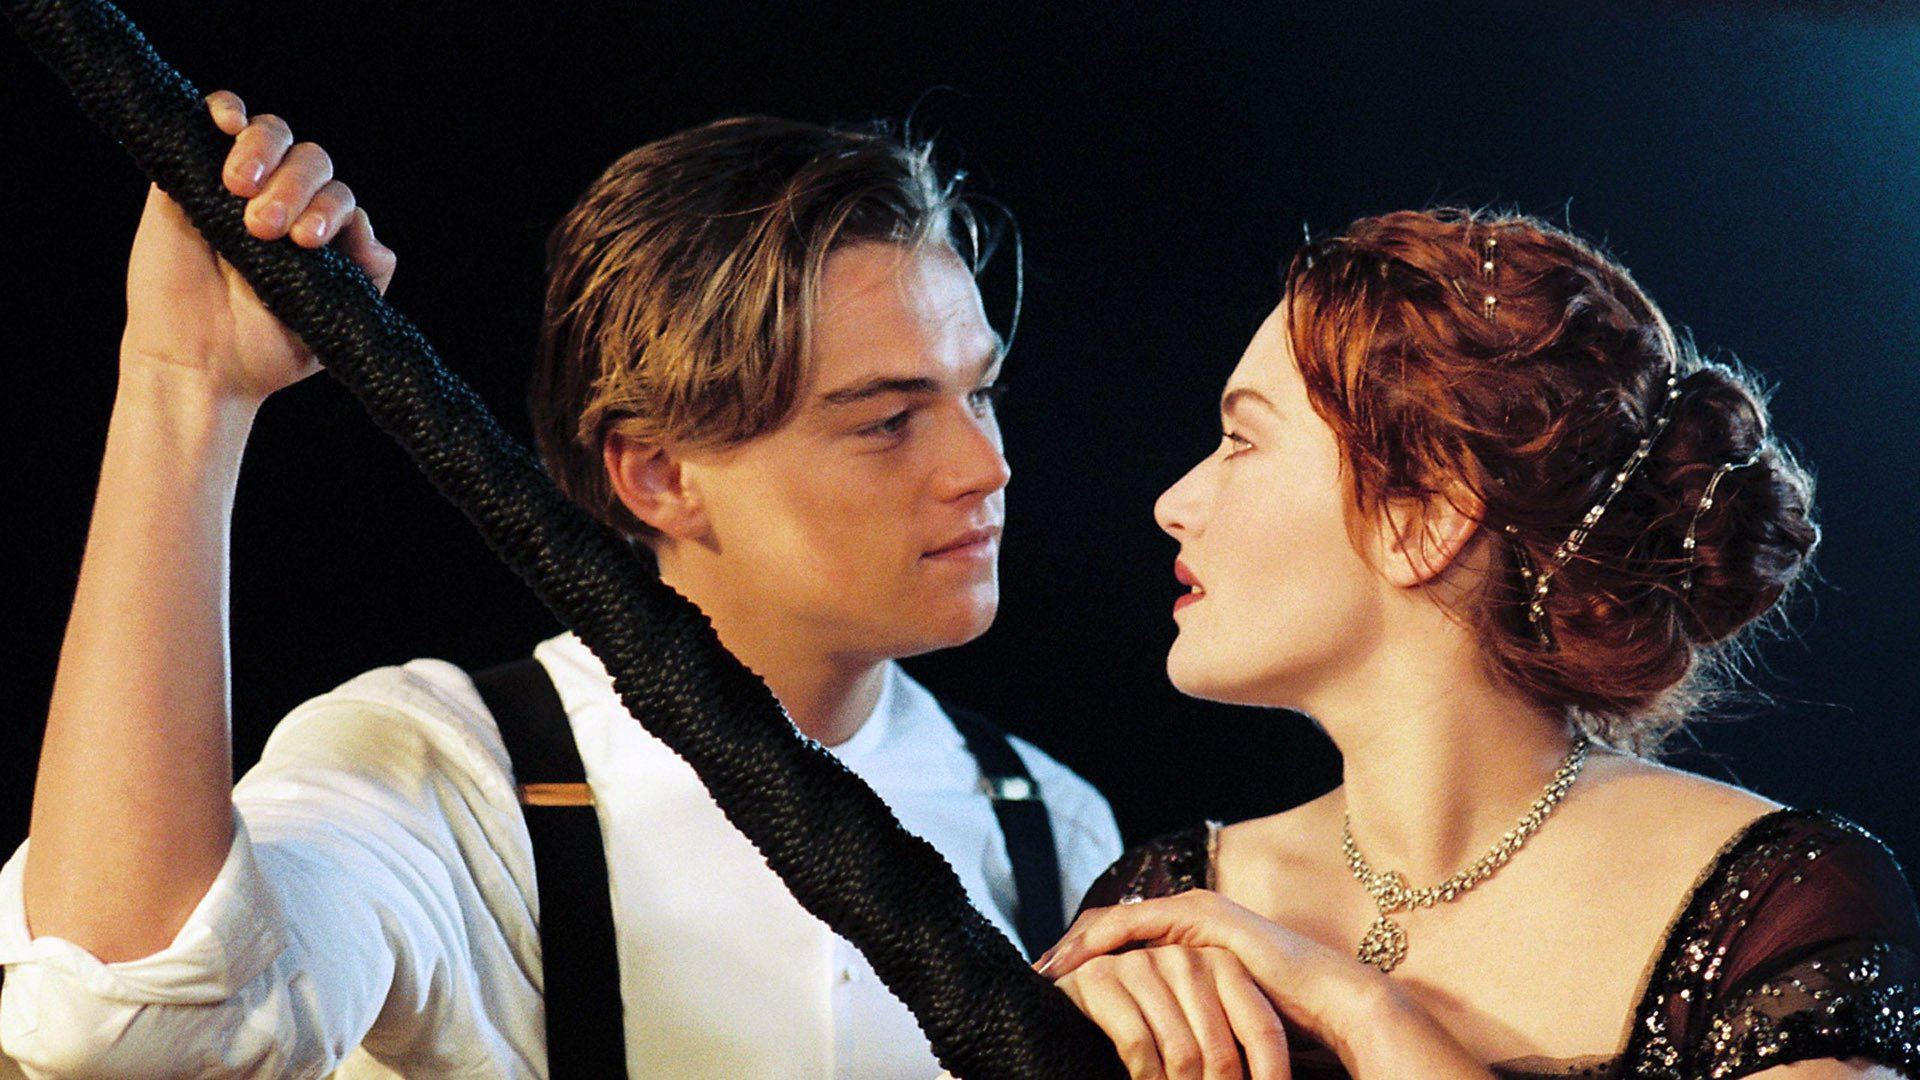 Leo and kate dating 2019 calendar